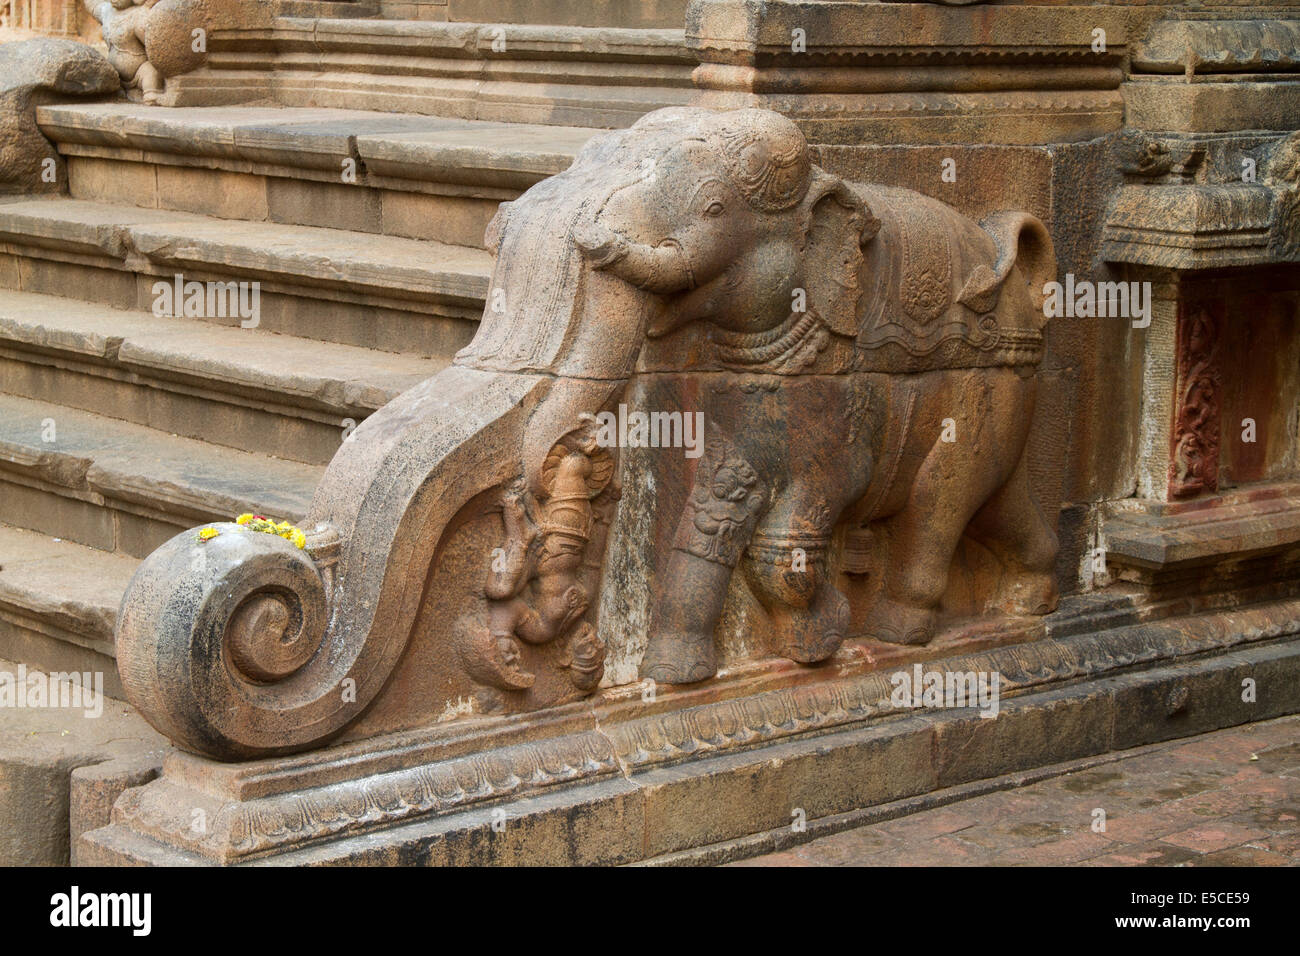 Ornate carved stone handrail in the form of an elephant in the Brihadishvar Temple.Thanjavur (Tanjore),India - Stock Image